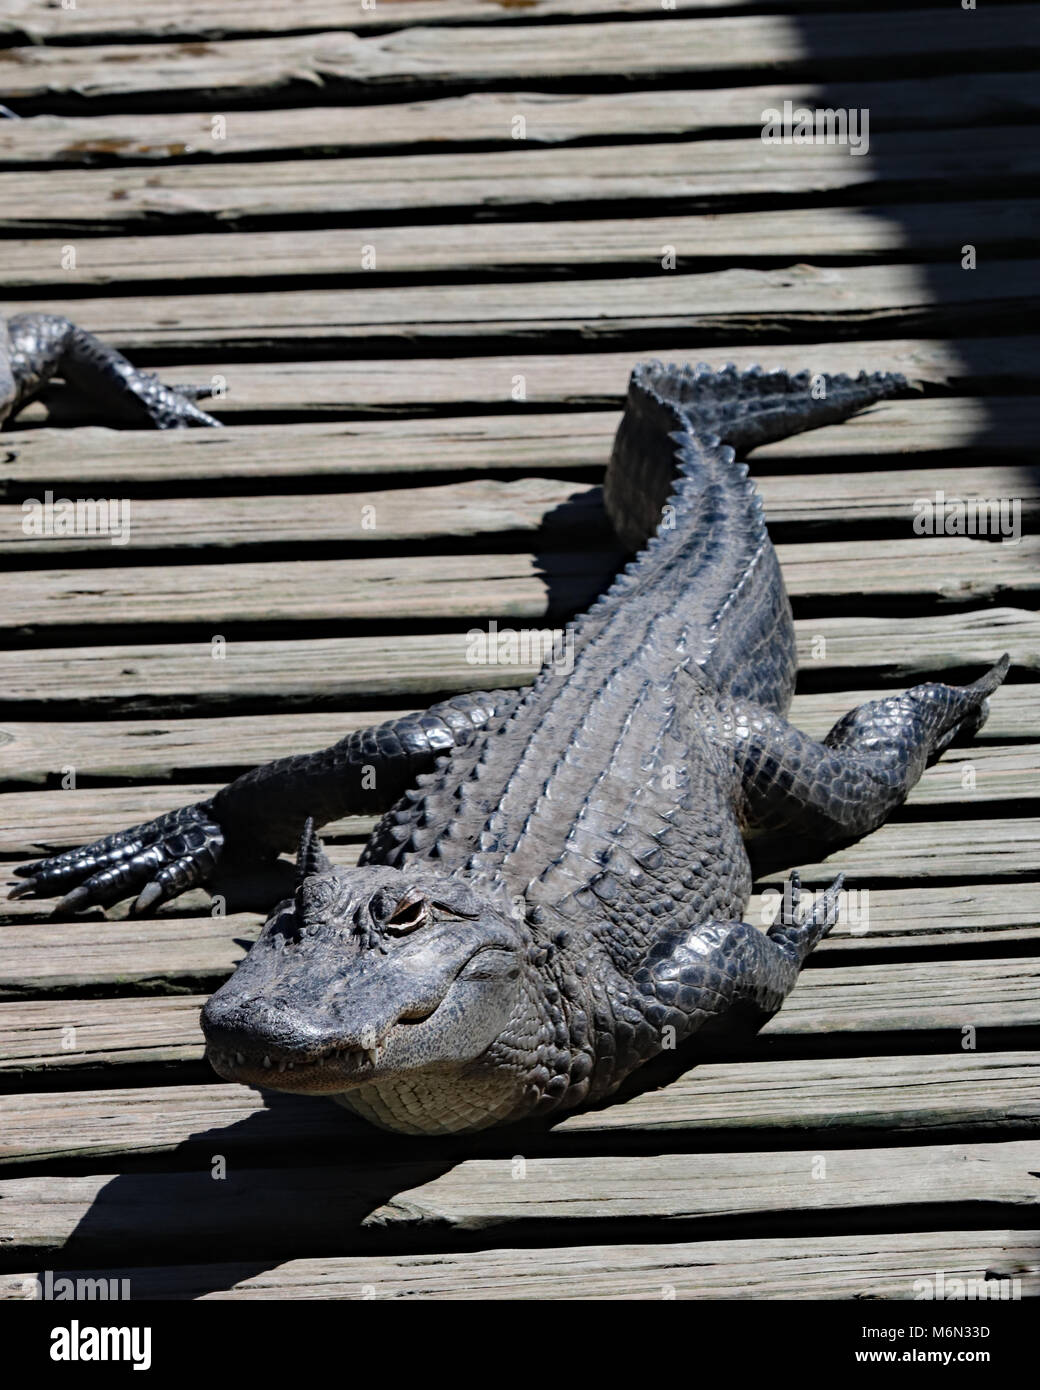 Alligator crawling along wood docks at Gatorland, Orlando where you can feed them if you like or just watch them - Stock Image